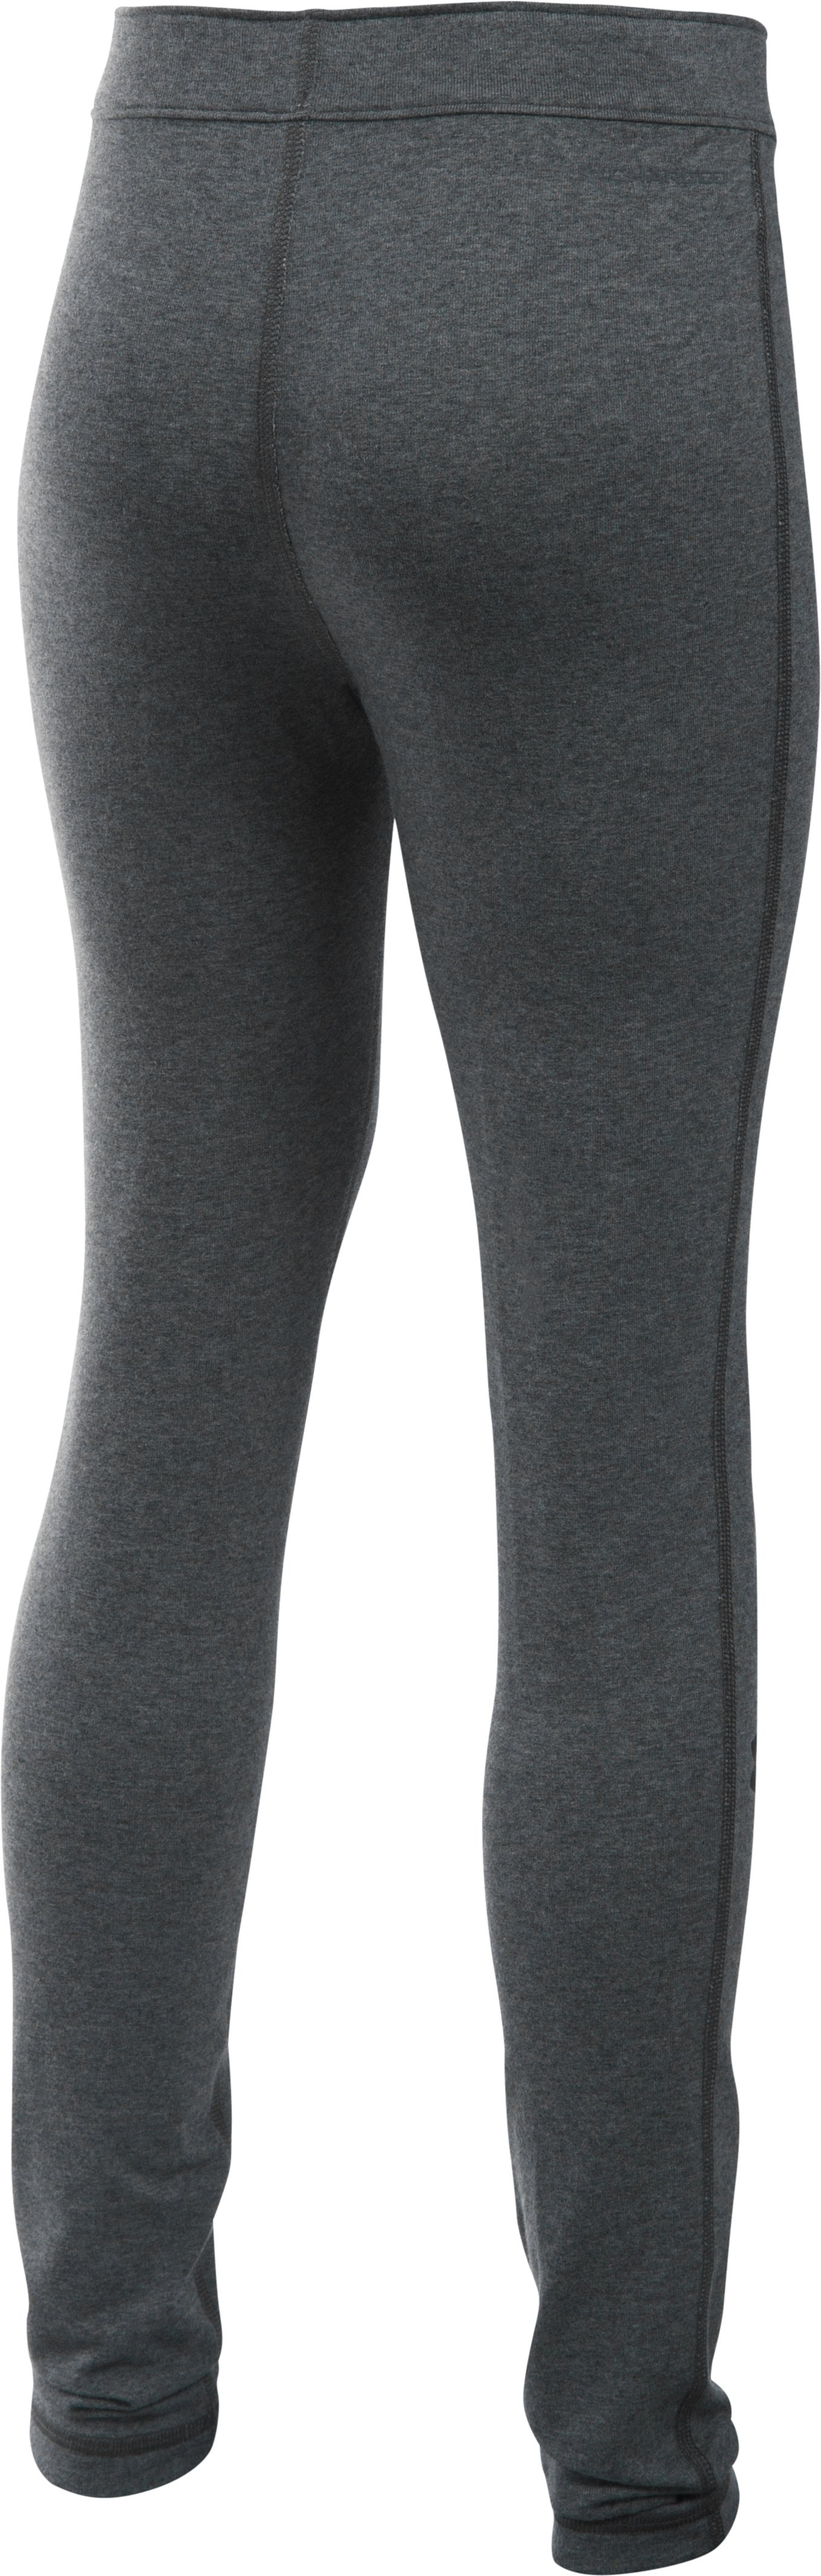 Girls' UA Favorite Campus Legging, Carbon Heather